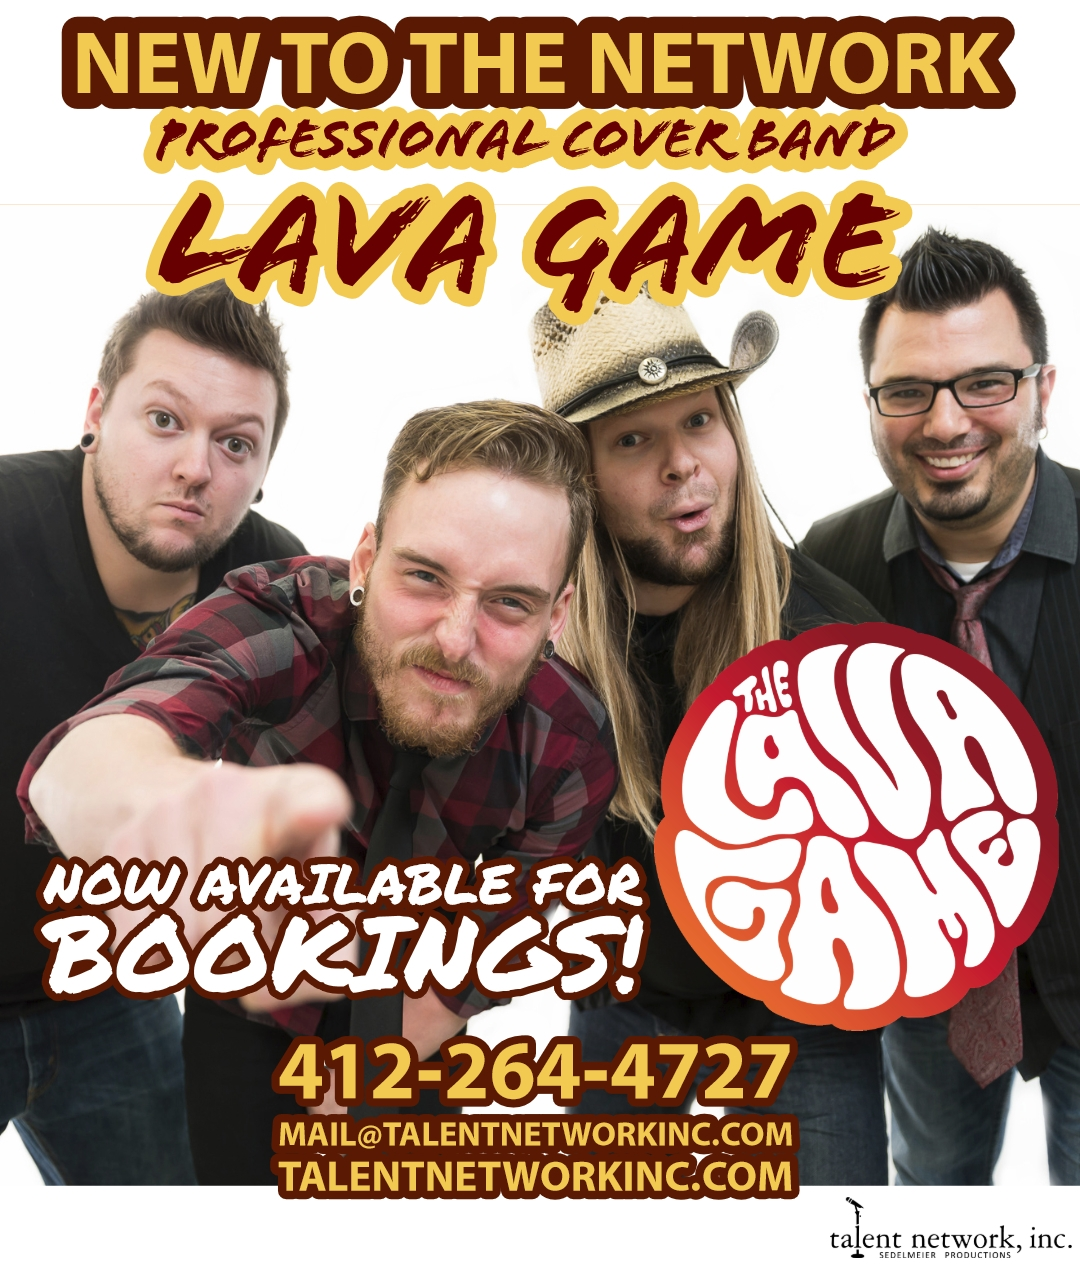 The Lava Game, live cover band, playing love, live entertainment, talent network inc, novelty entertainment, corporate entertainment, convention entertainment, live entertainment, cover band performance, booking entertainment, bookings, talent bookings, talent network inc